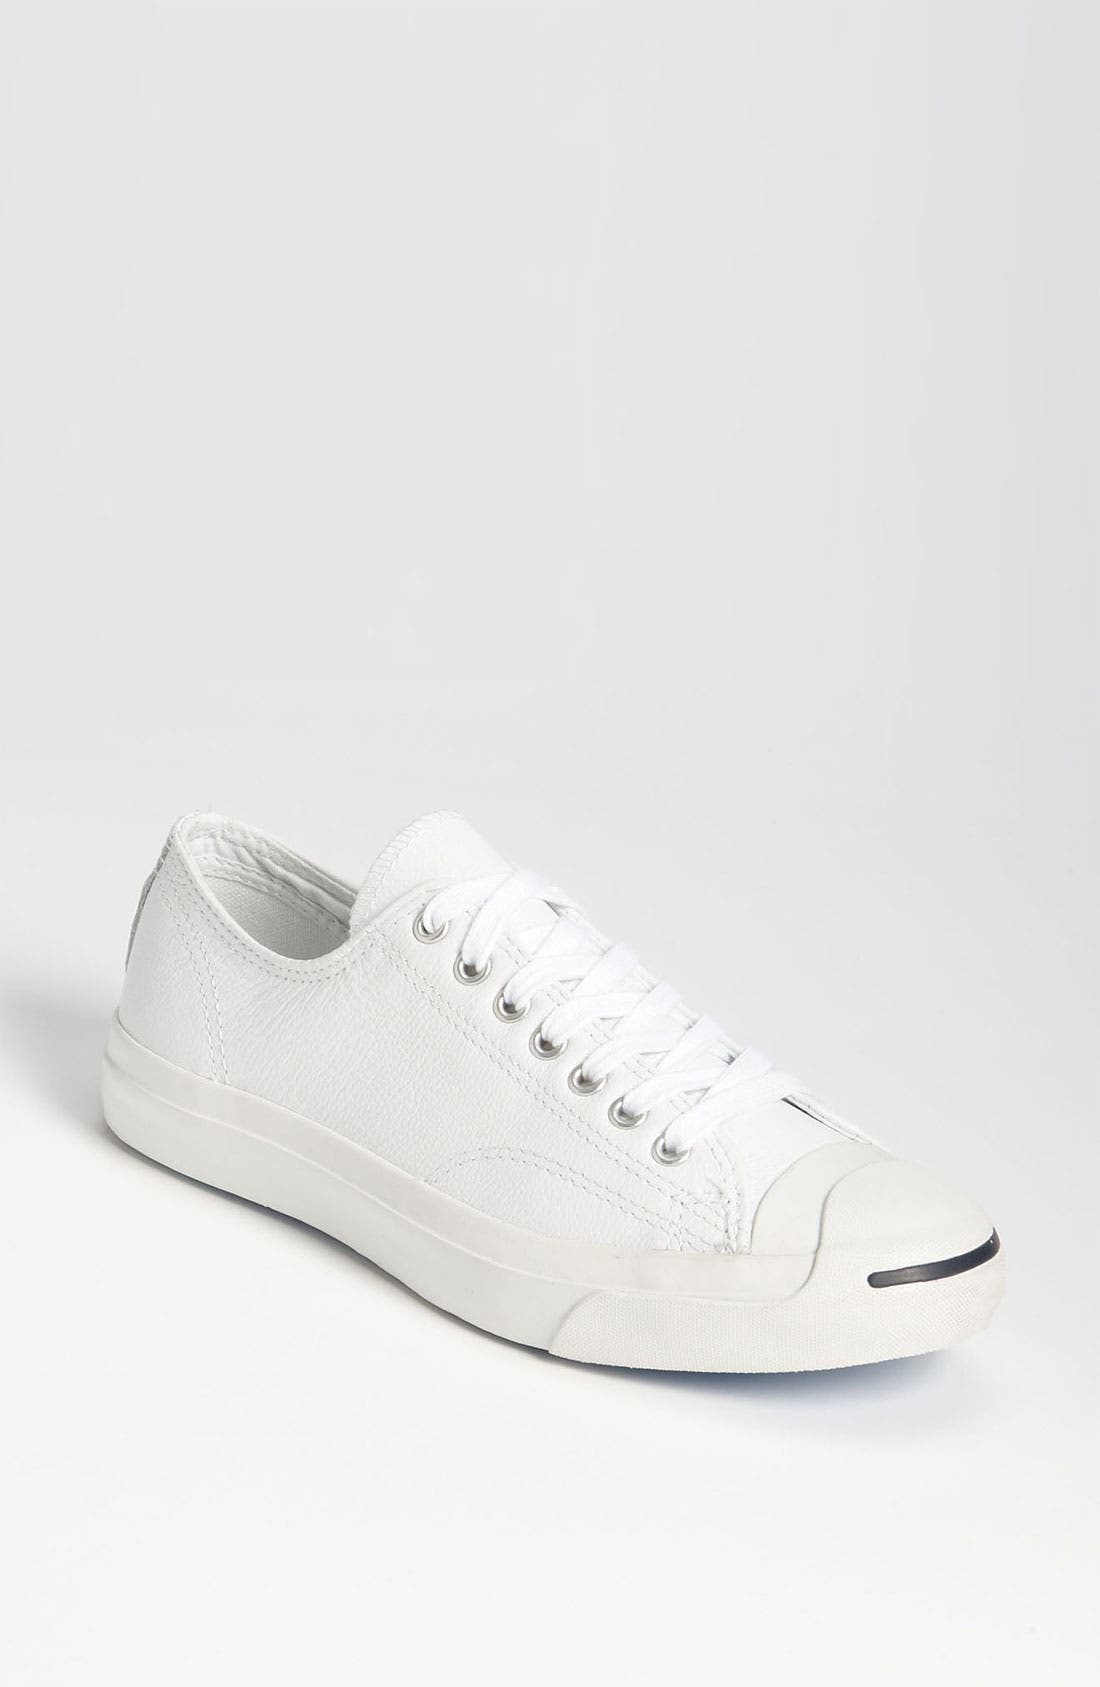 'Jack Purcell' Leather Sneaker,                         Main,                         color,